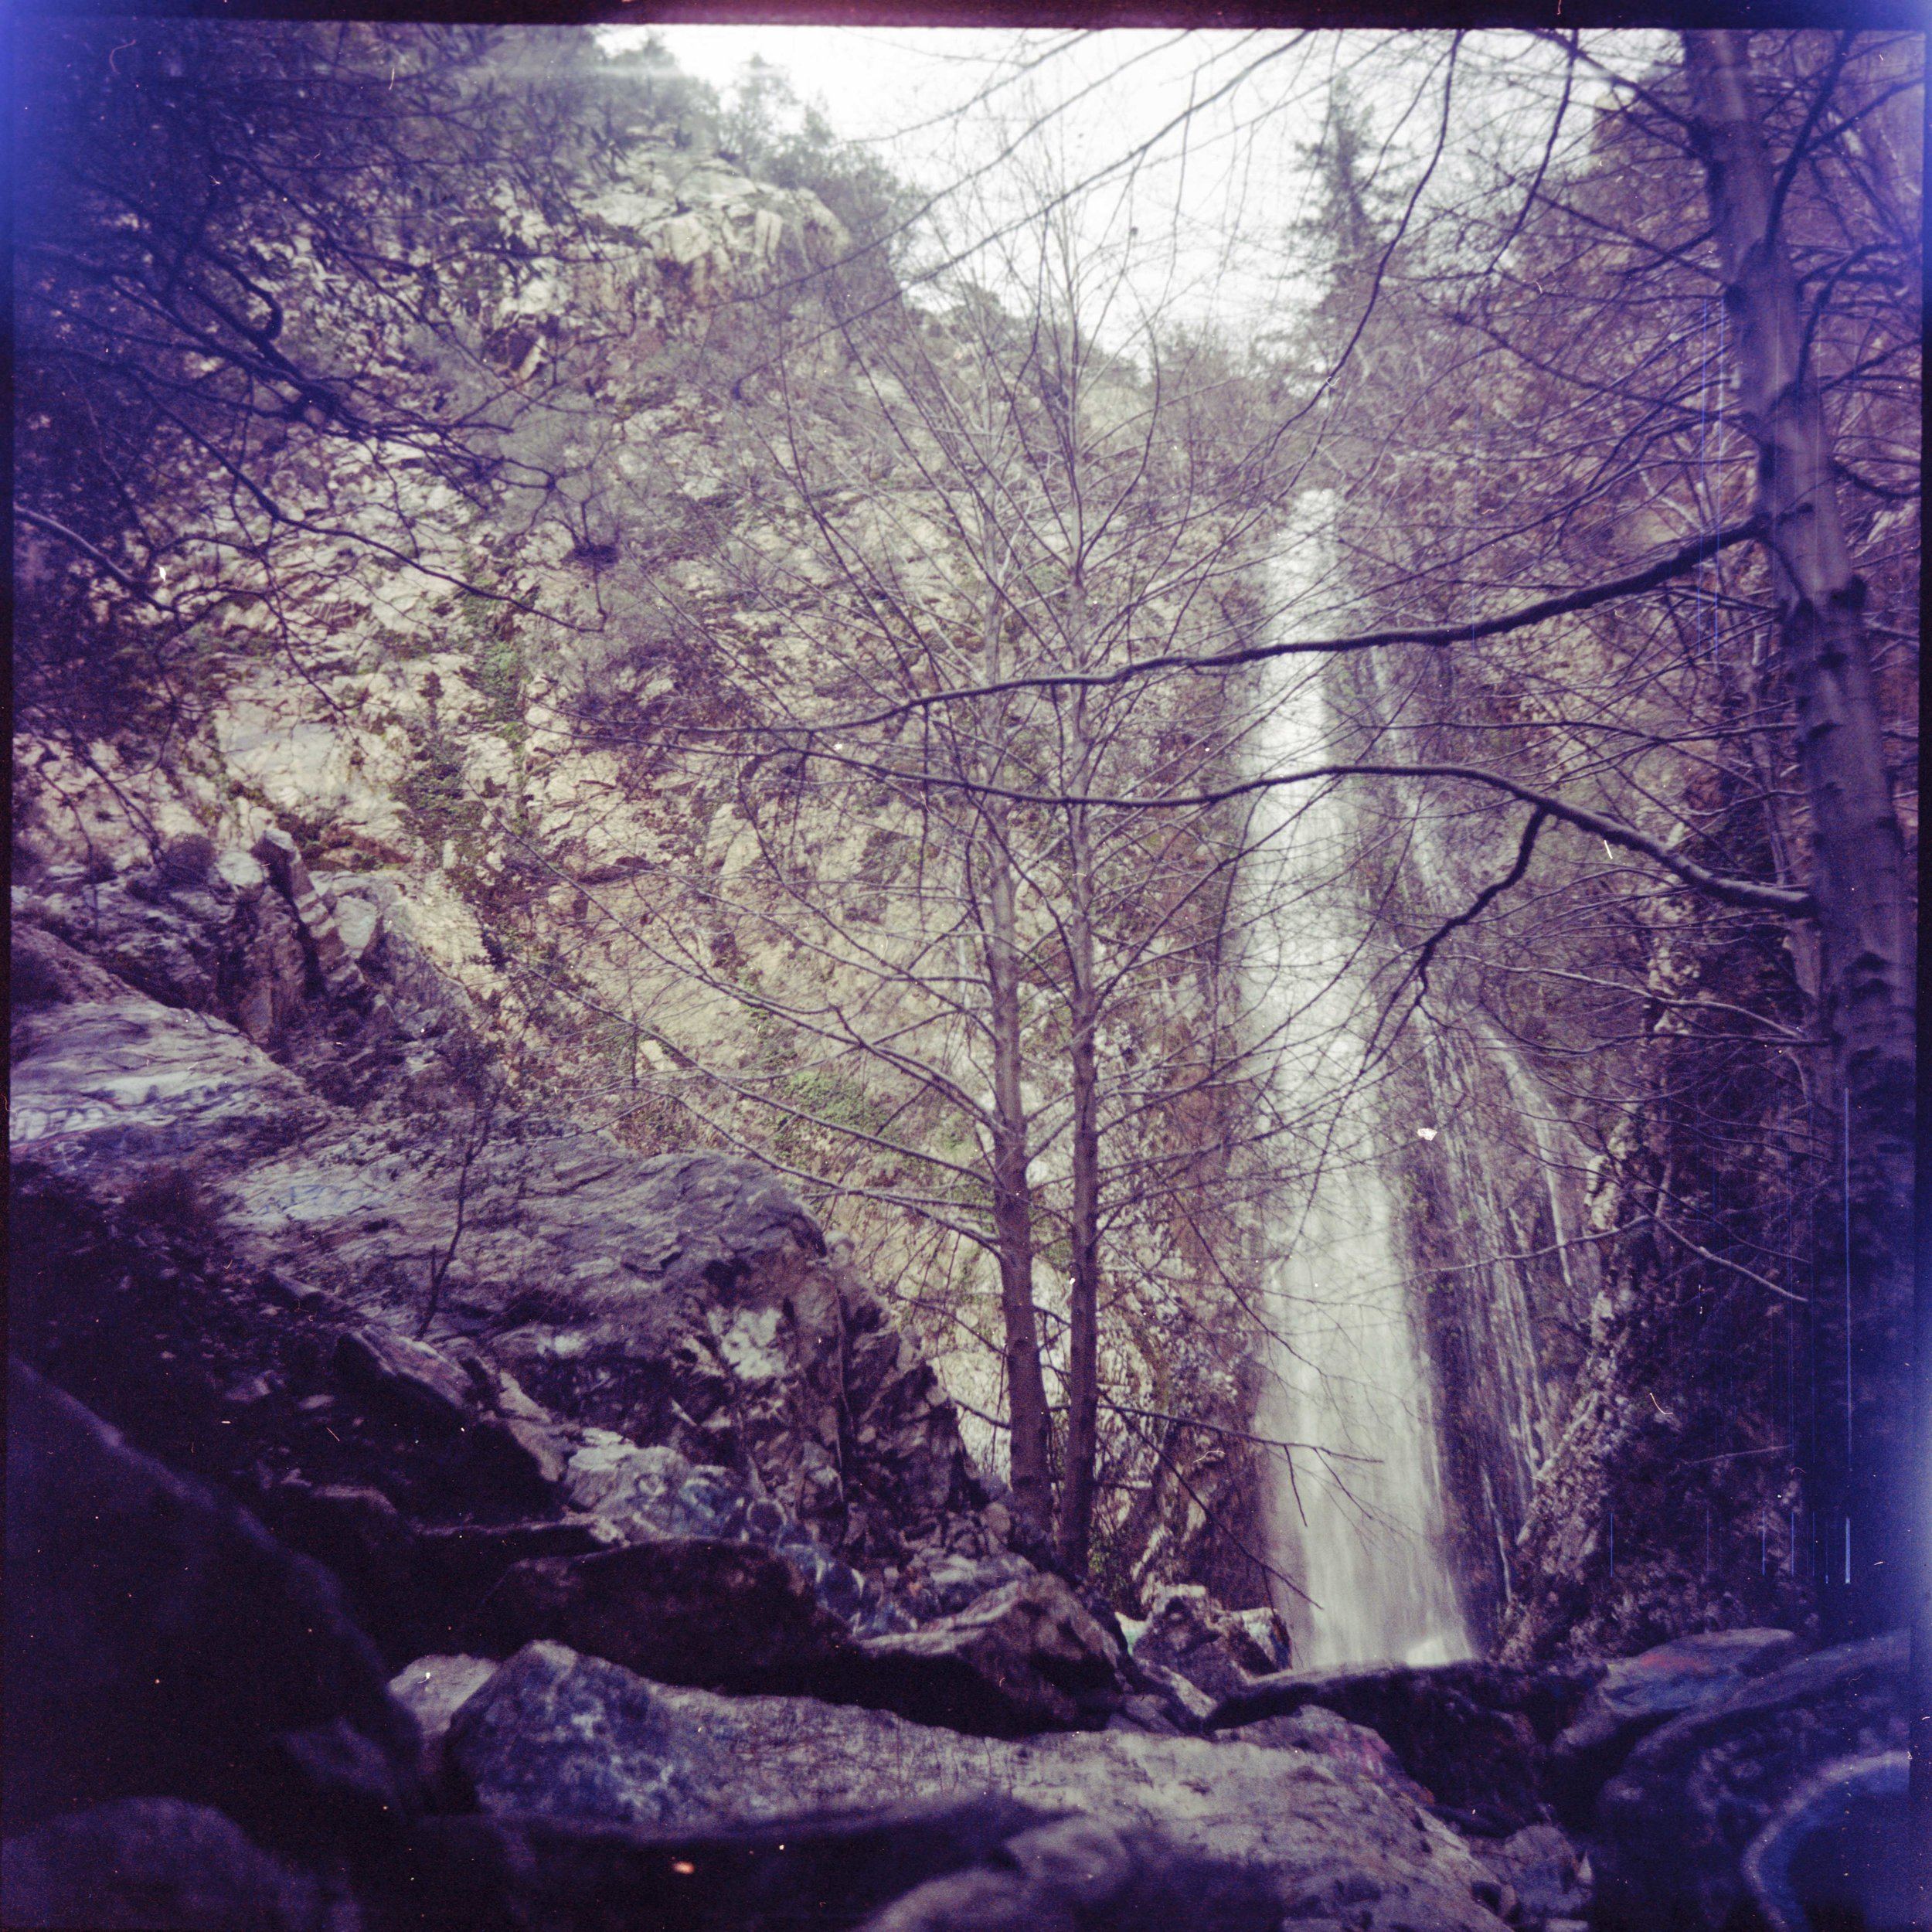 Medium Format Hiking005.jpg